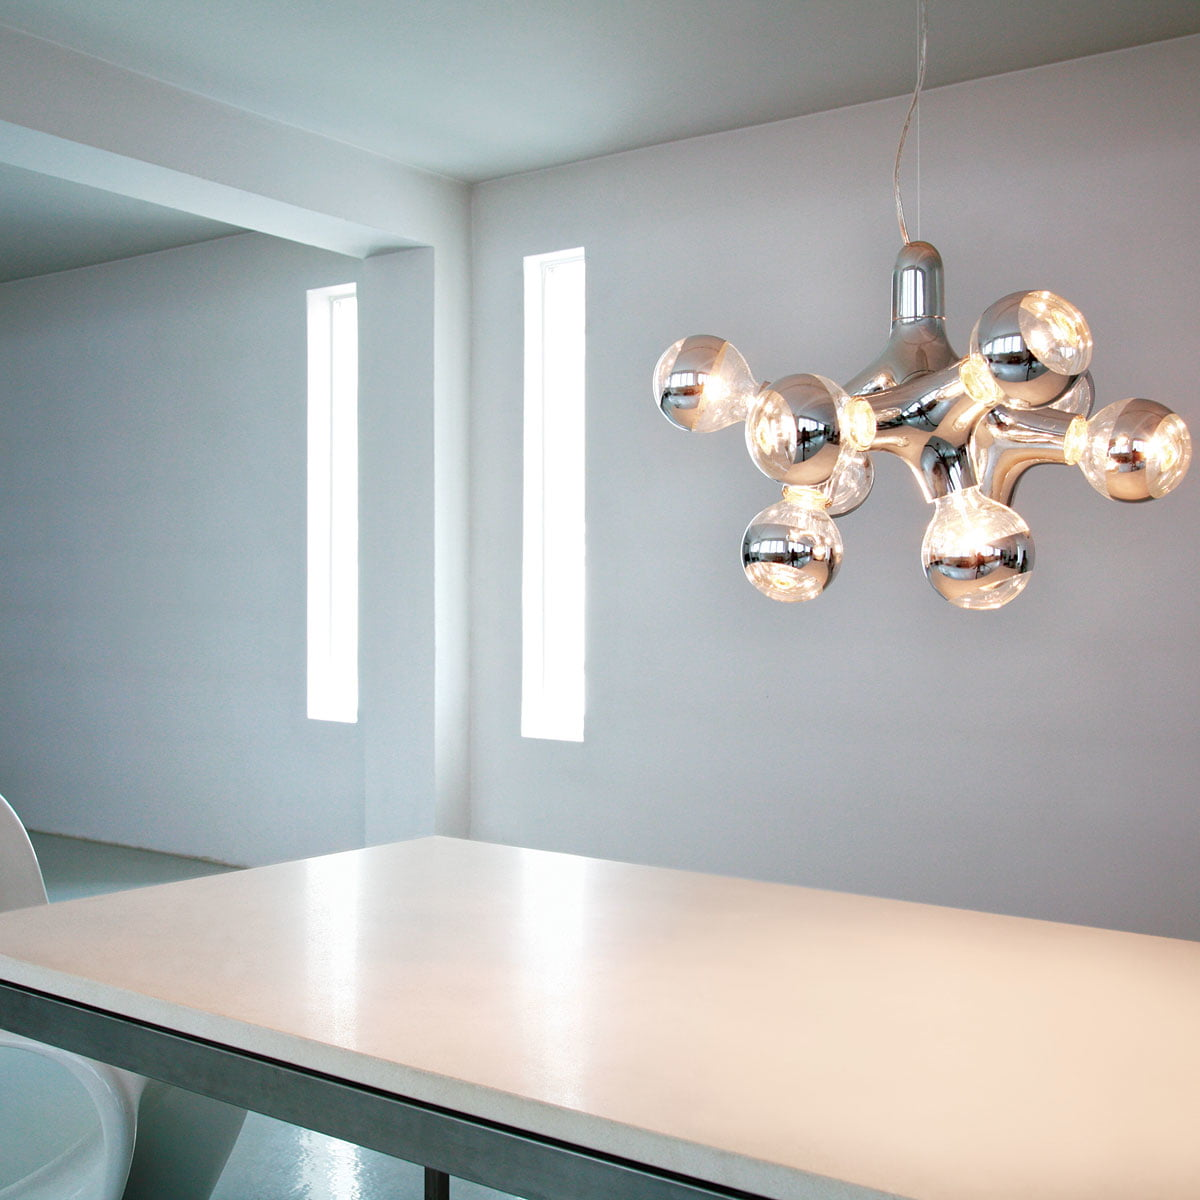 DNA Pendant Lamp by Hopf & Wortmann for Next